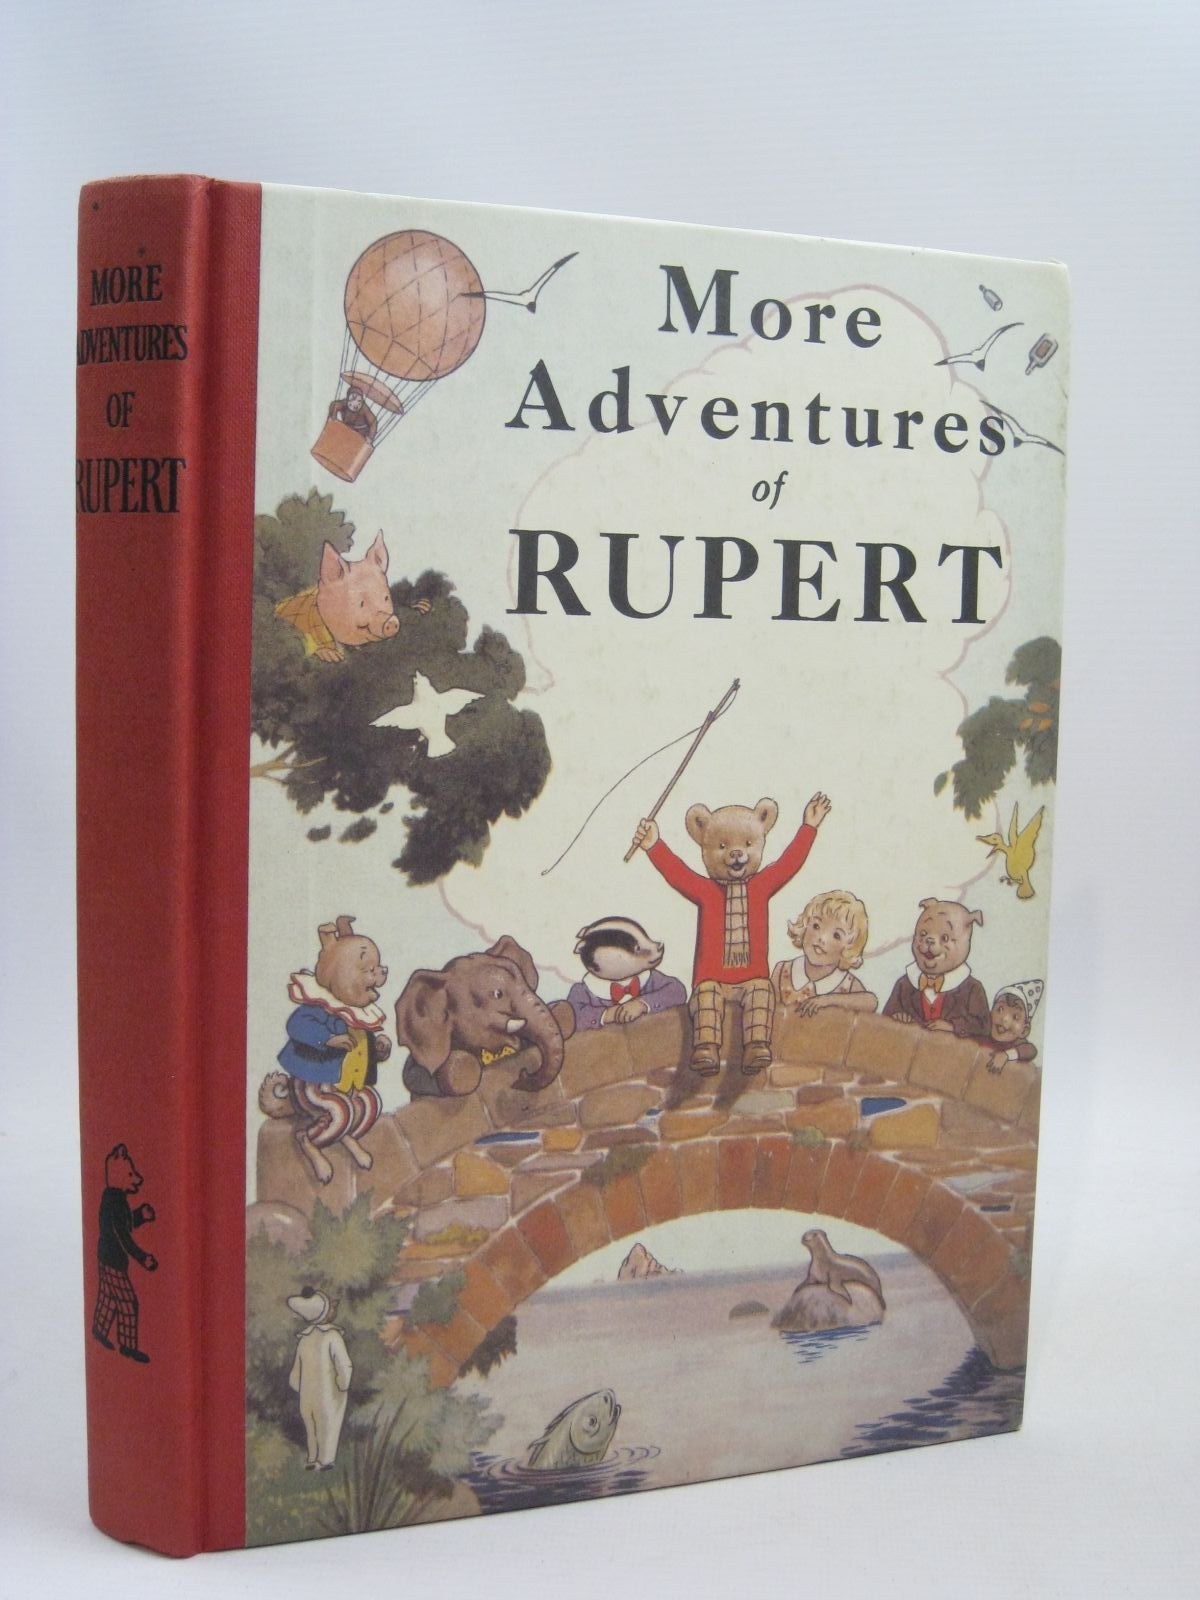 Photo of RUPERT ANNUAL 1937 (FACSIMILE) - MORE ADVENTURES OF RUPERT written by Bestall, Alfred illustrated by Bestall, Alfred published by Express Newspapers Ltd. (STOCK CODE: 1405725)  for sale by Stella & Rose's Books